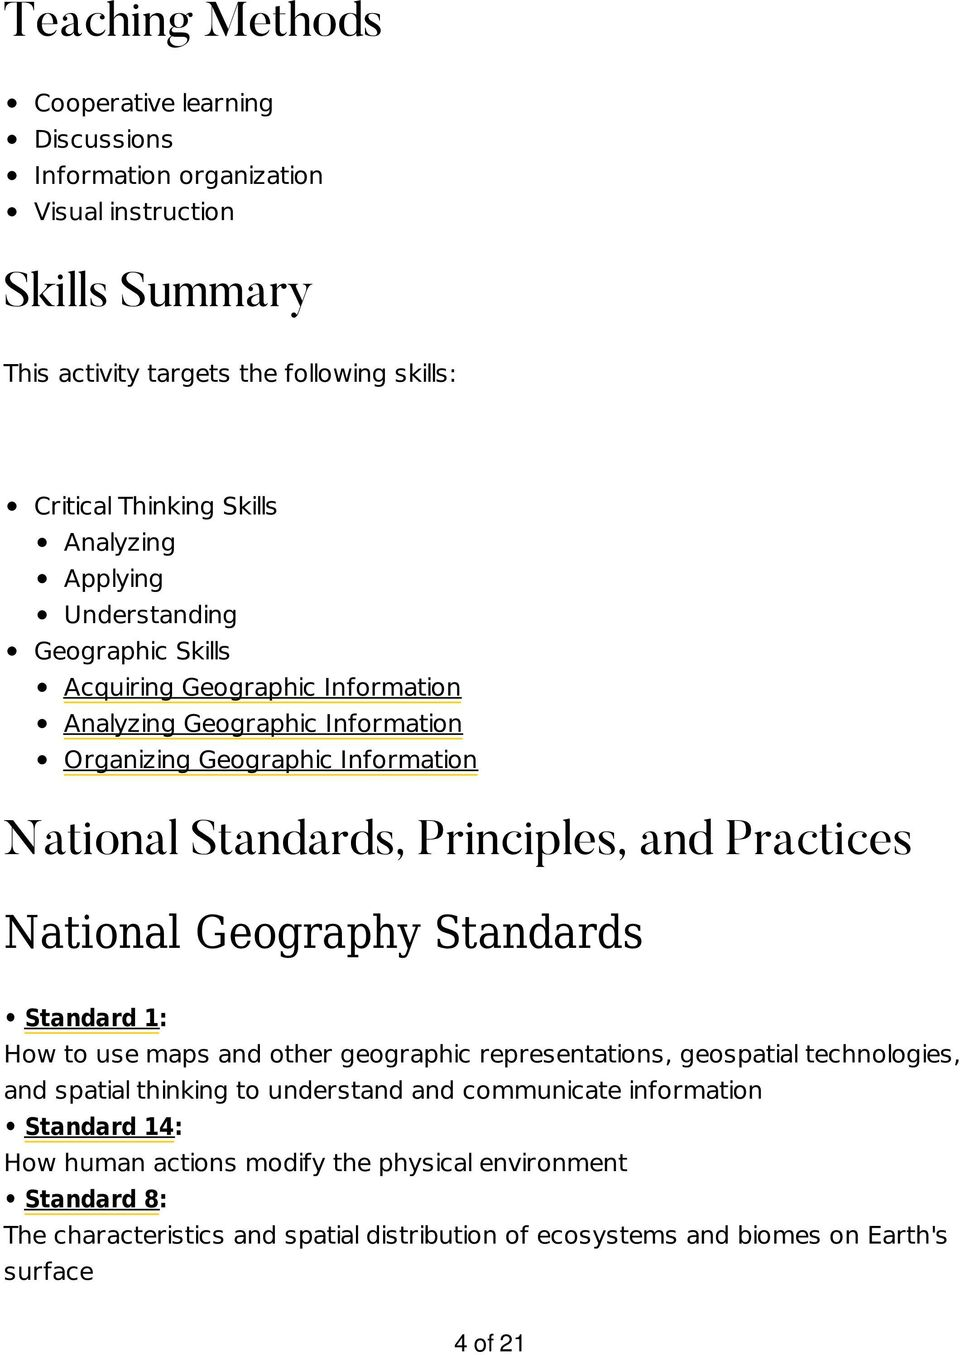 and Practices National Geography Standards Standard 1: How to use maps and other geographic representations, geospatial technologies, and spatial thinking to understand and